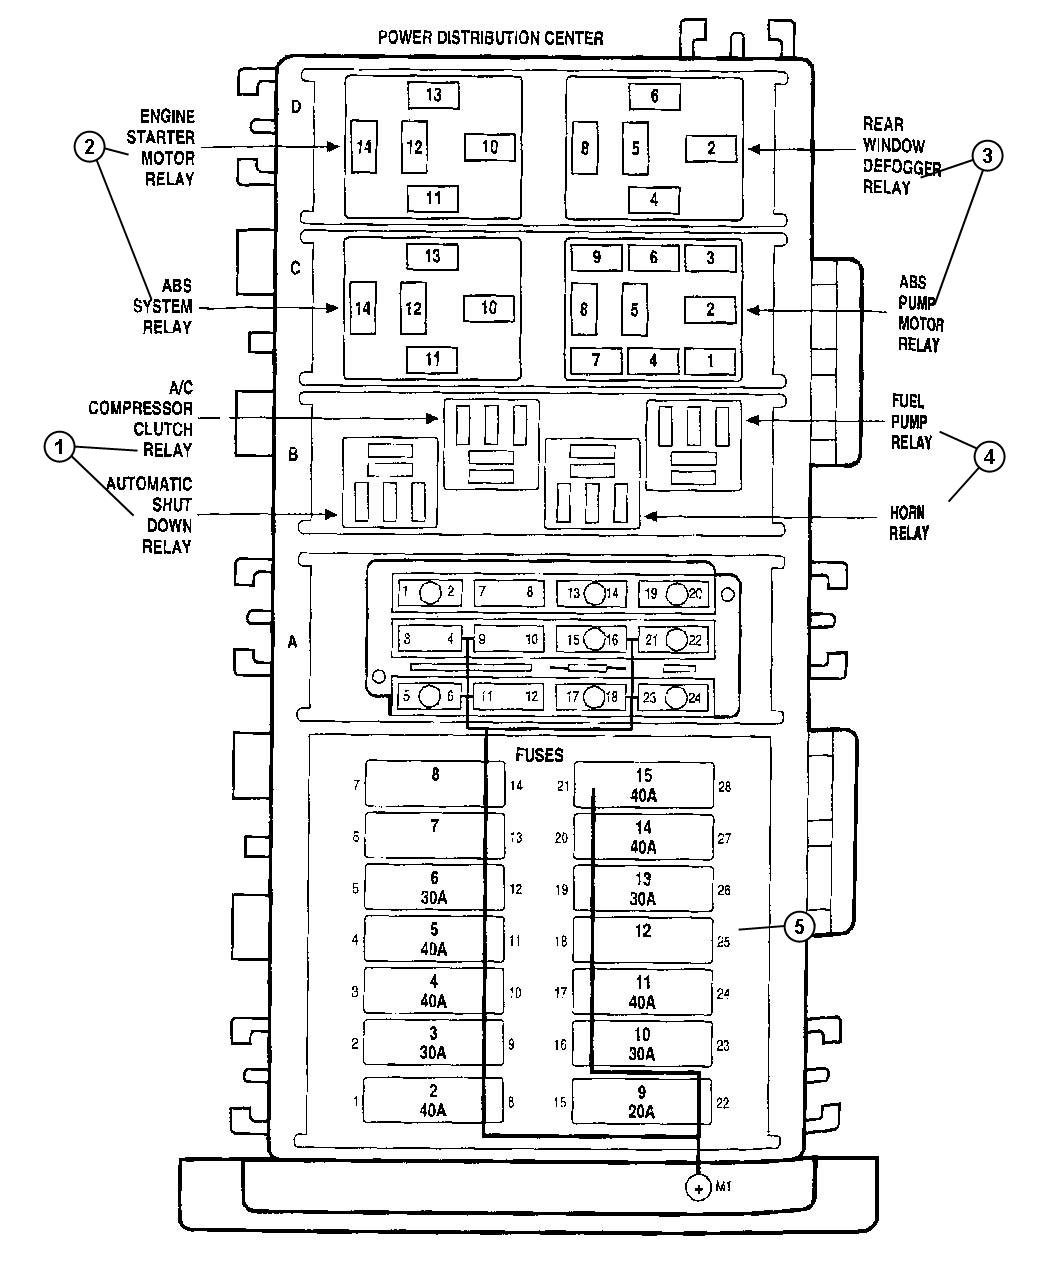 1997 Jeep Wrangler Fuse Box Under Hood All Kind Of Wiring Diagrams 1999 Diagram Power Distribution Center Realys And Fuses